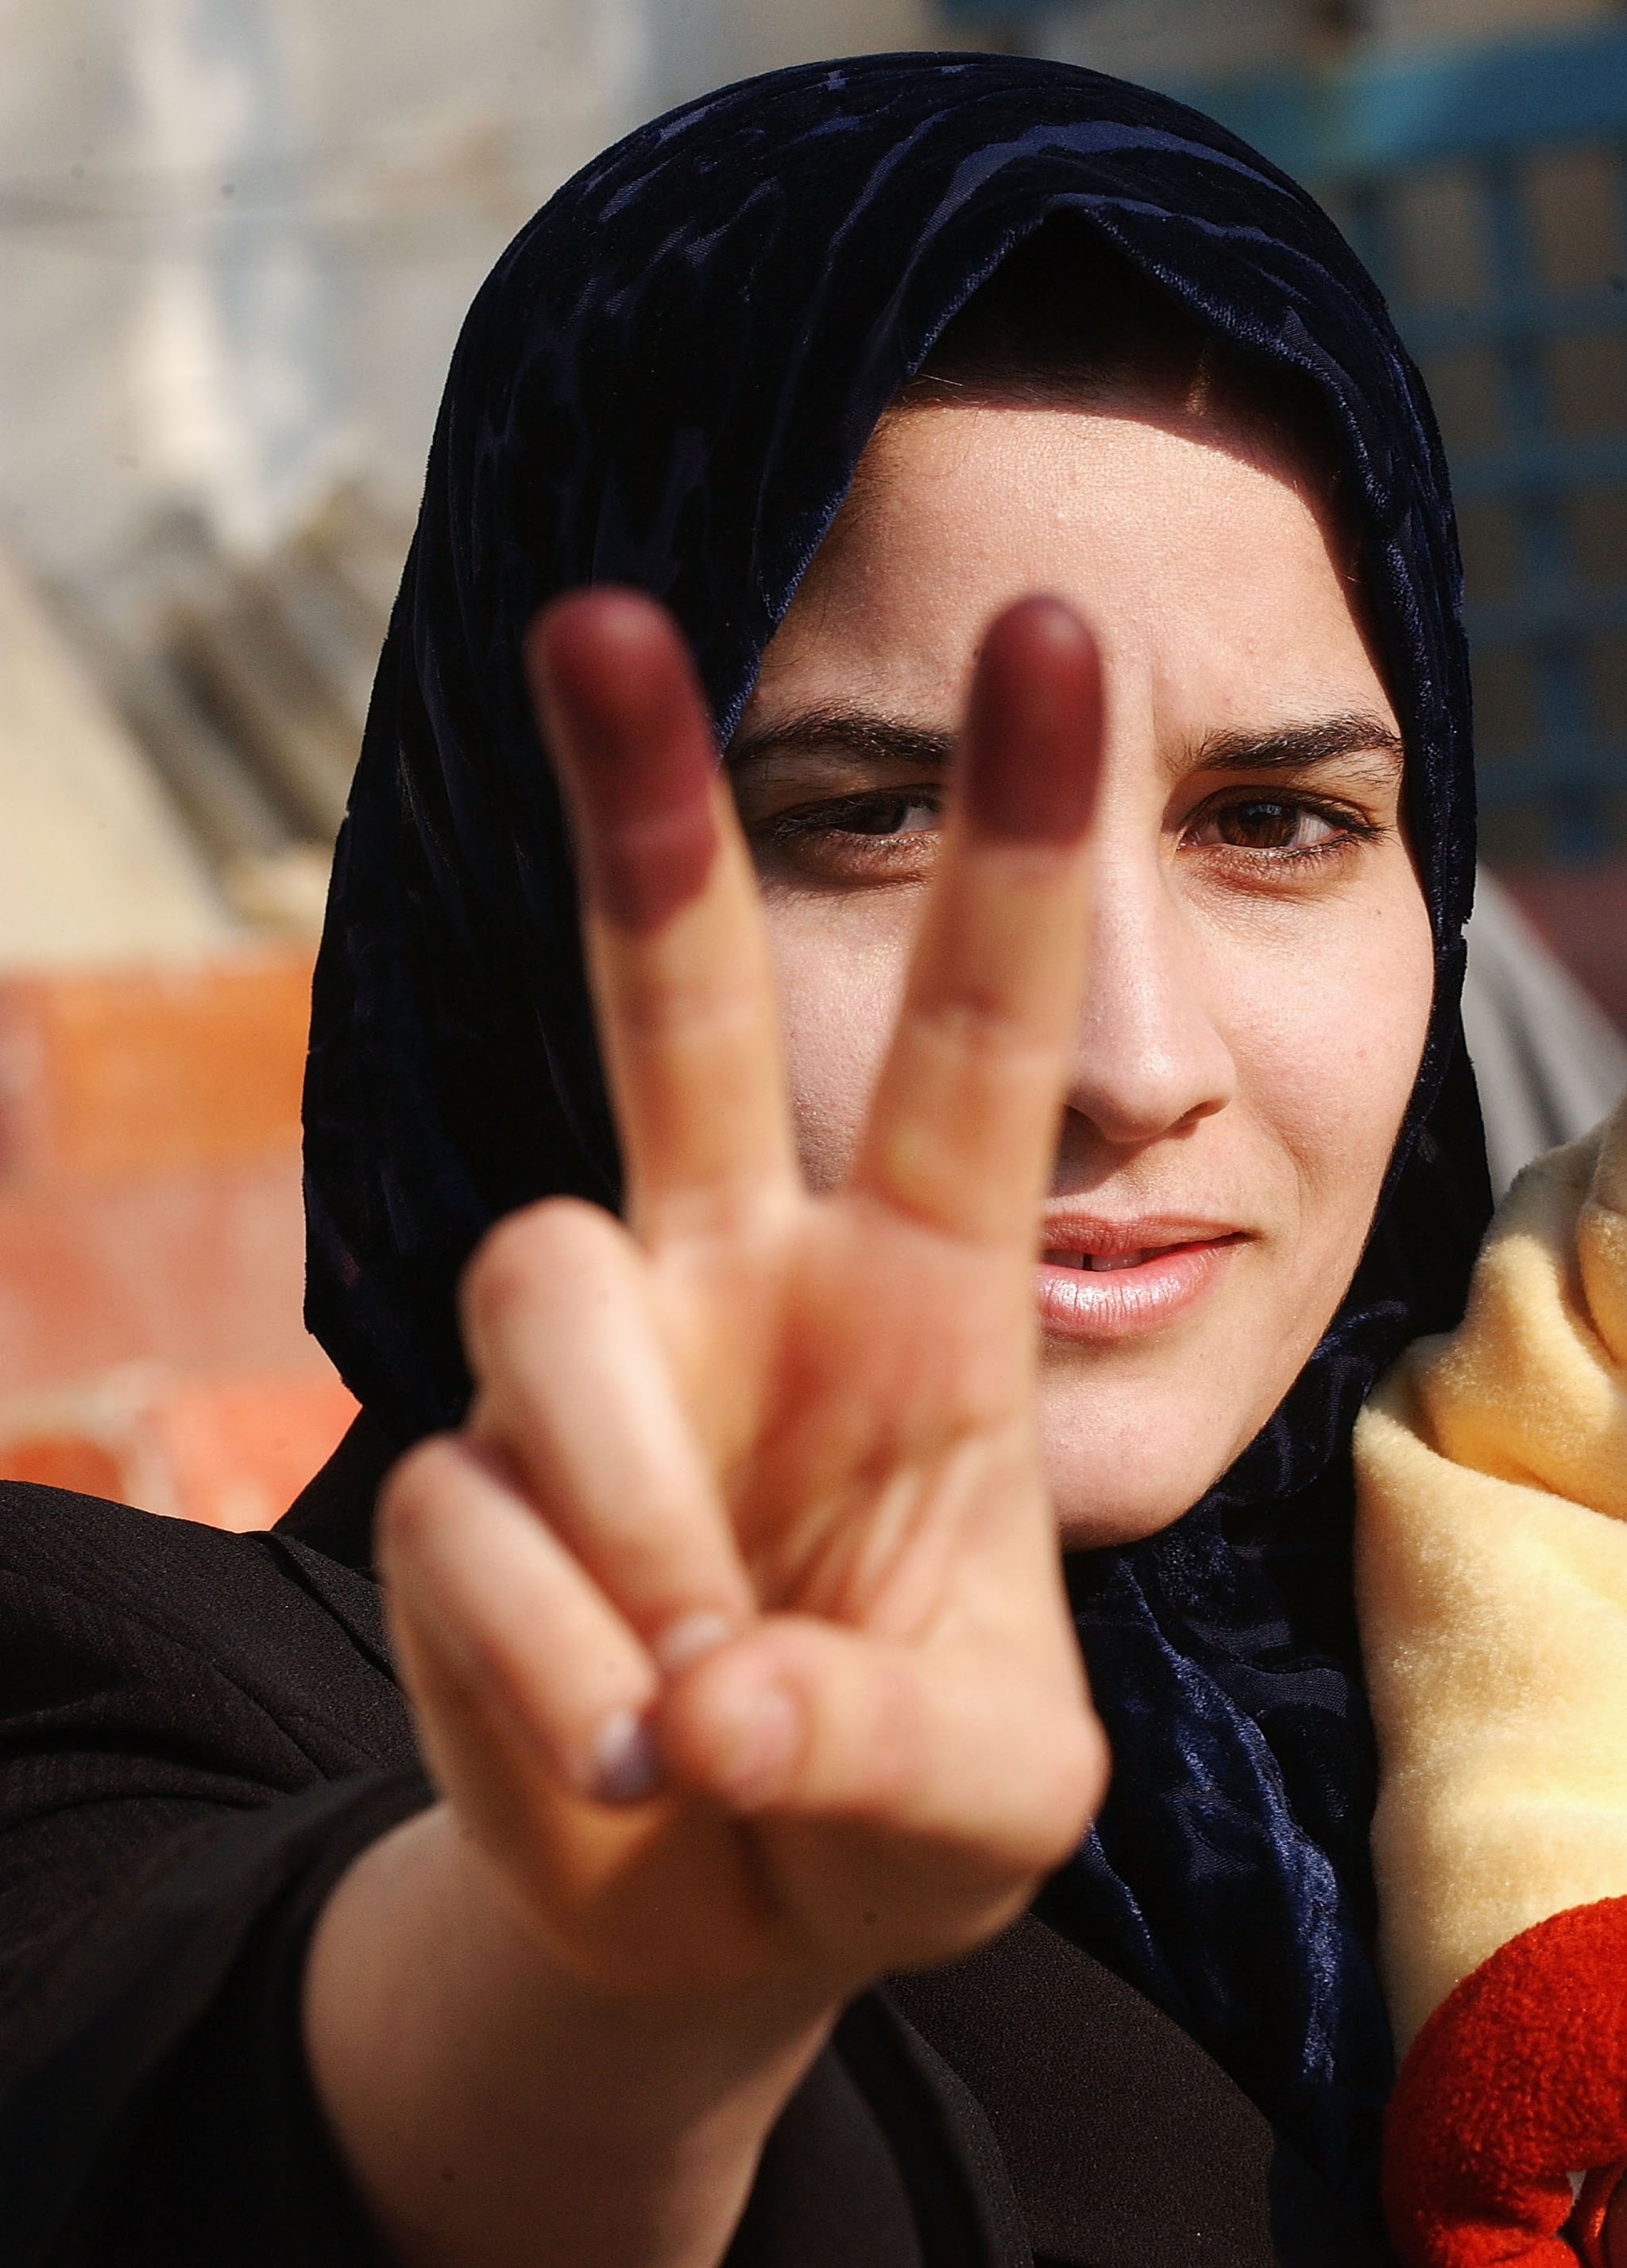 An Iraqi woman displays her inked fingers after voting on December 15, 2005.